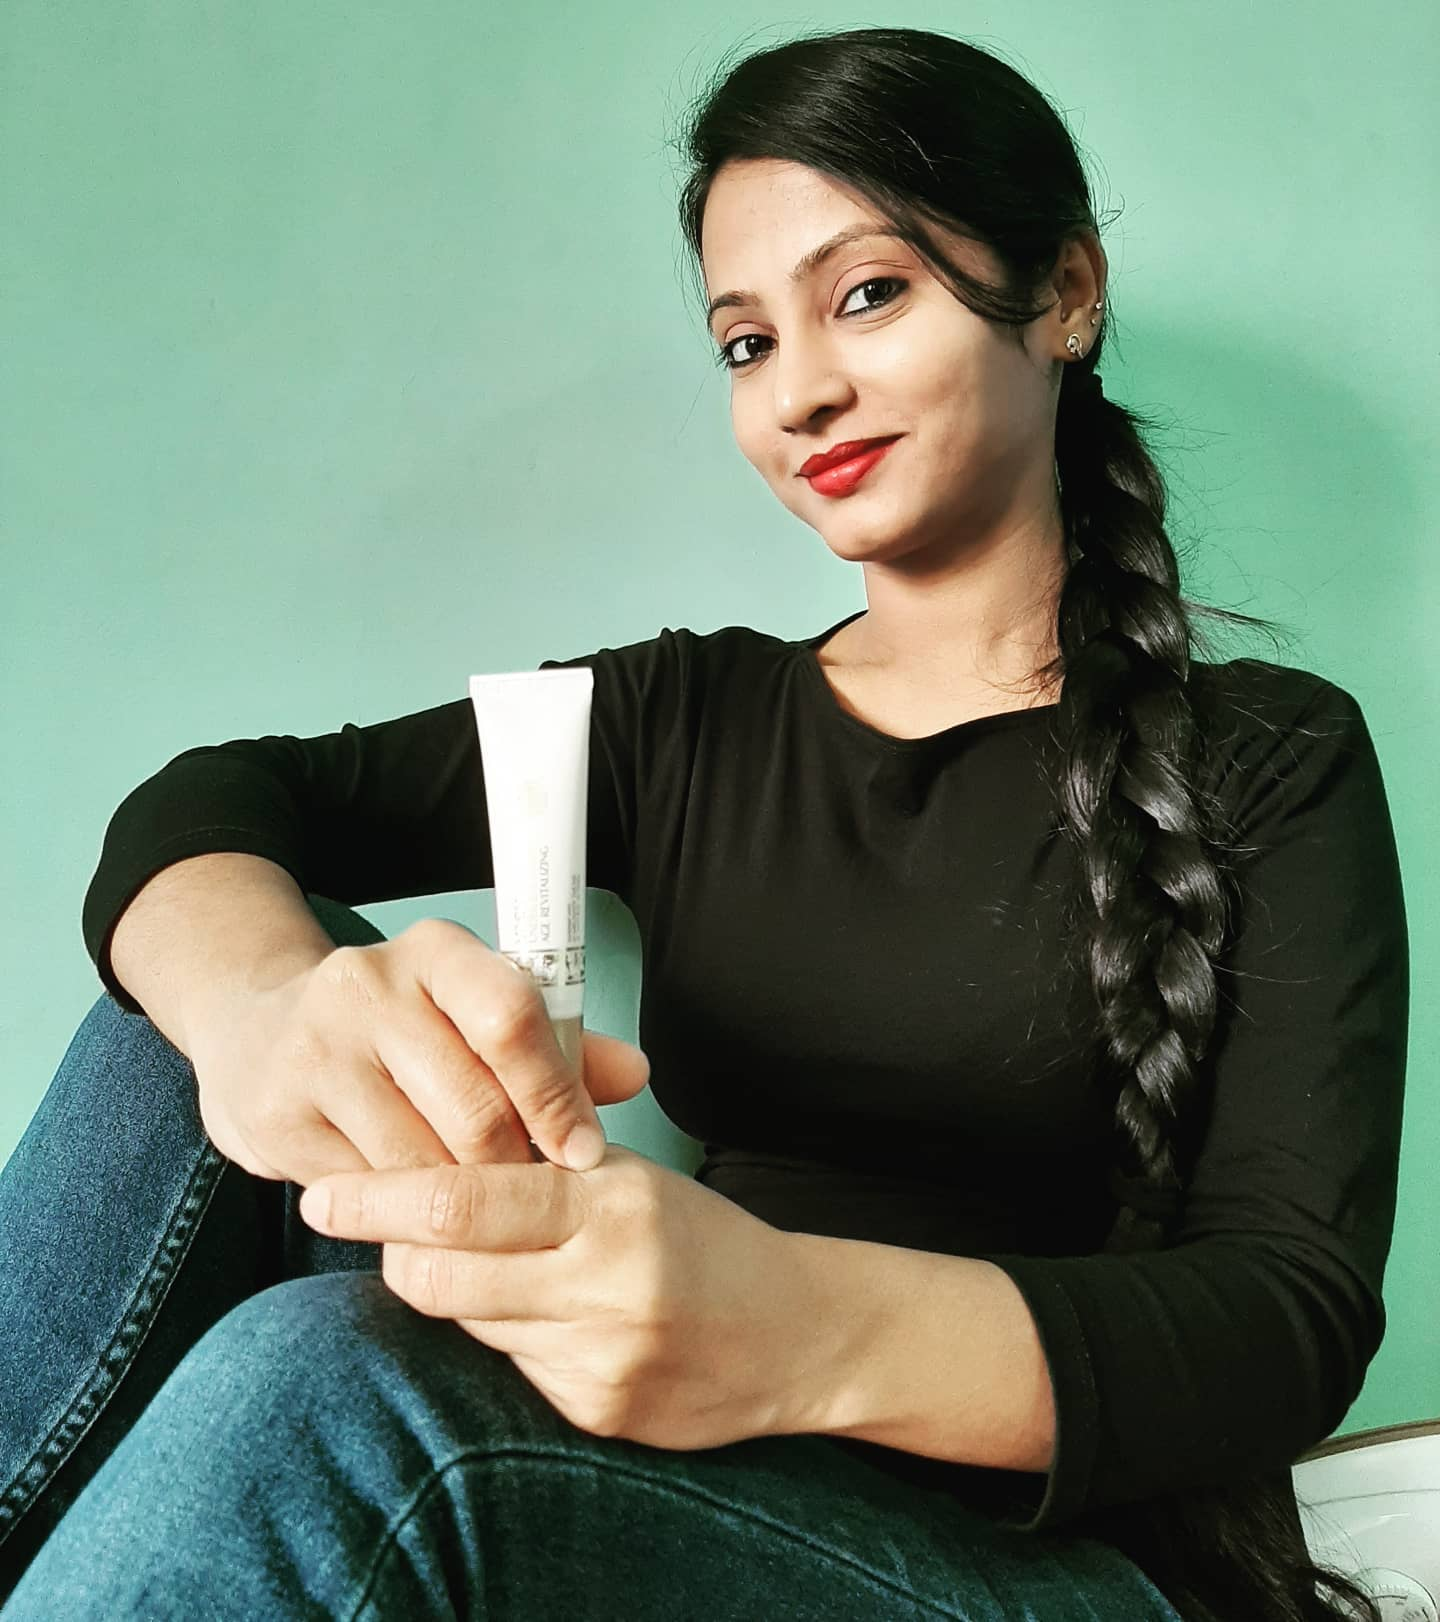 Vasu Age Revitalizing Under Eye Cream -Best under eye cream-By reshma_shaikh